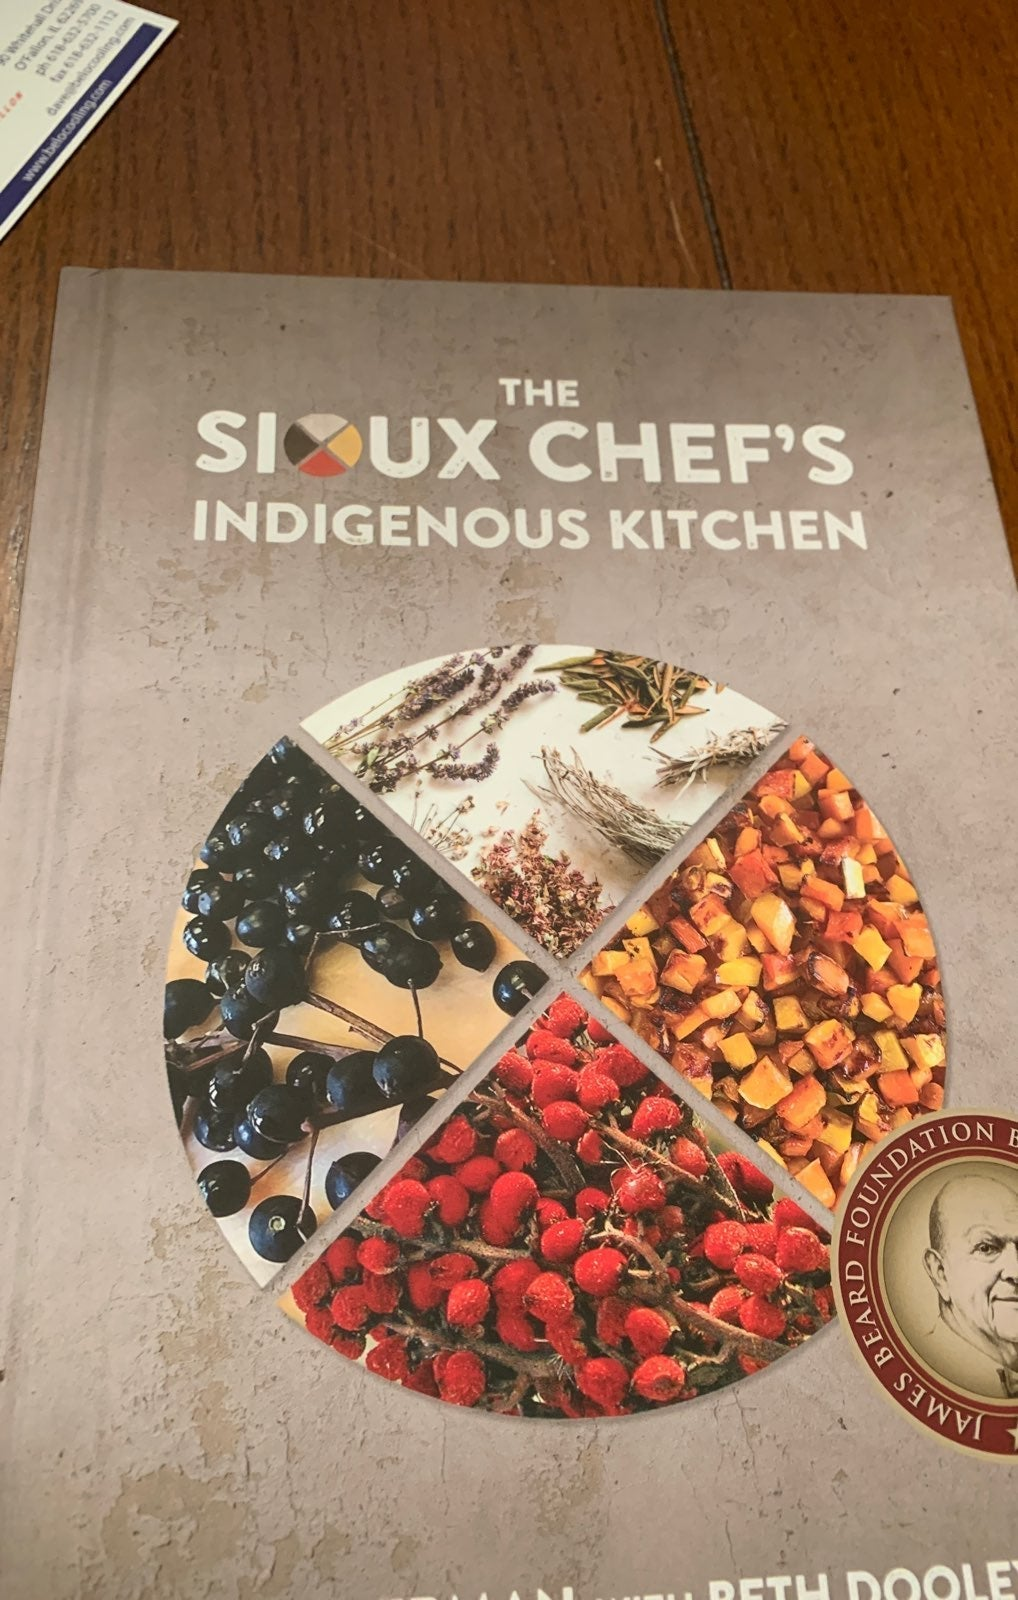 The Sioux Chef Indigeneous Kitchen